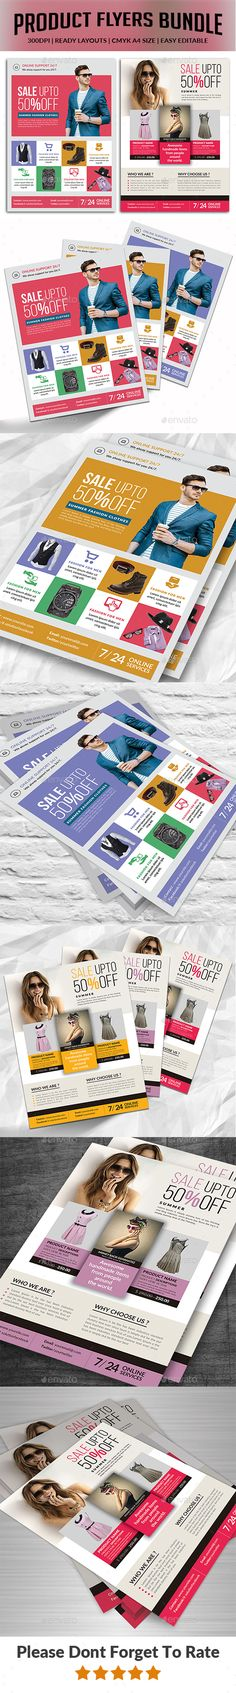 Product Flyers Bundle Templates by afjamaal Product Flyers Bundle Templates.This Flyers is made in photoshop the files included are help file and photoshop psd's. All psd's a